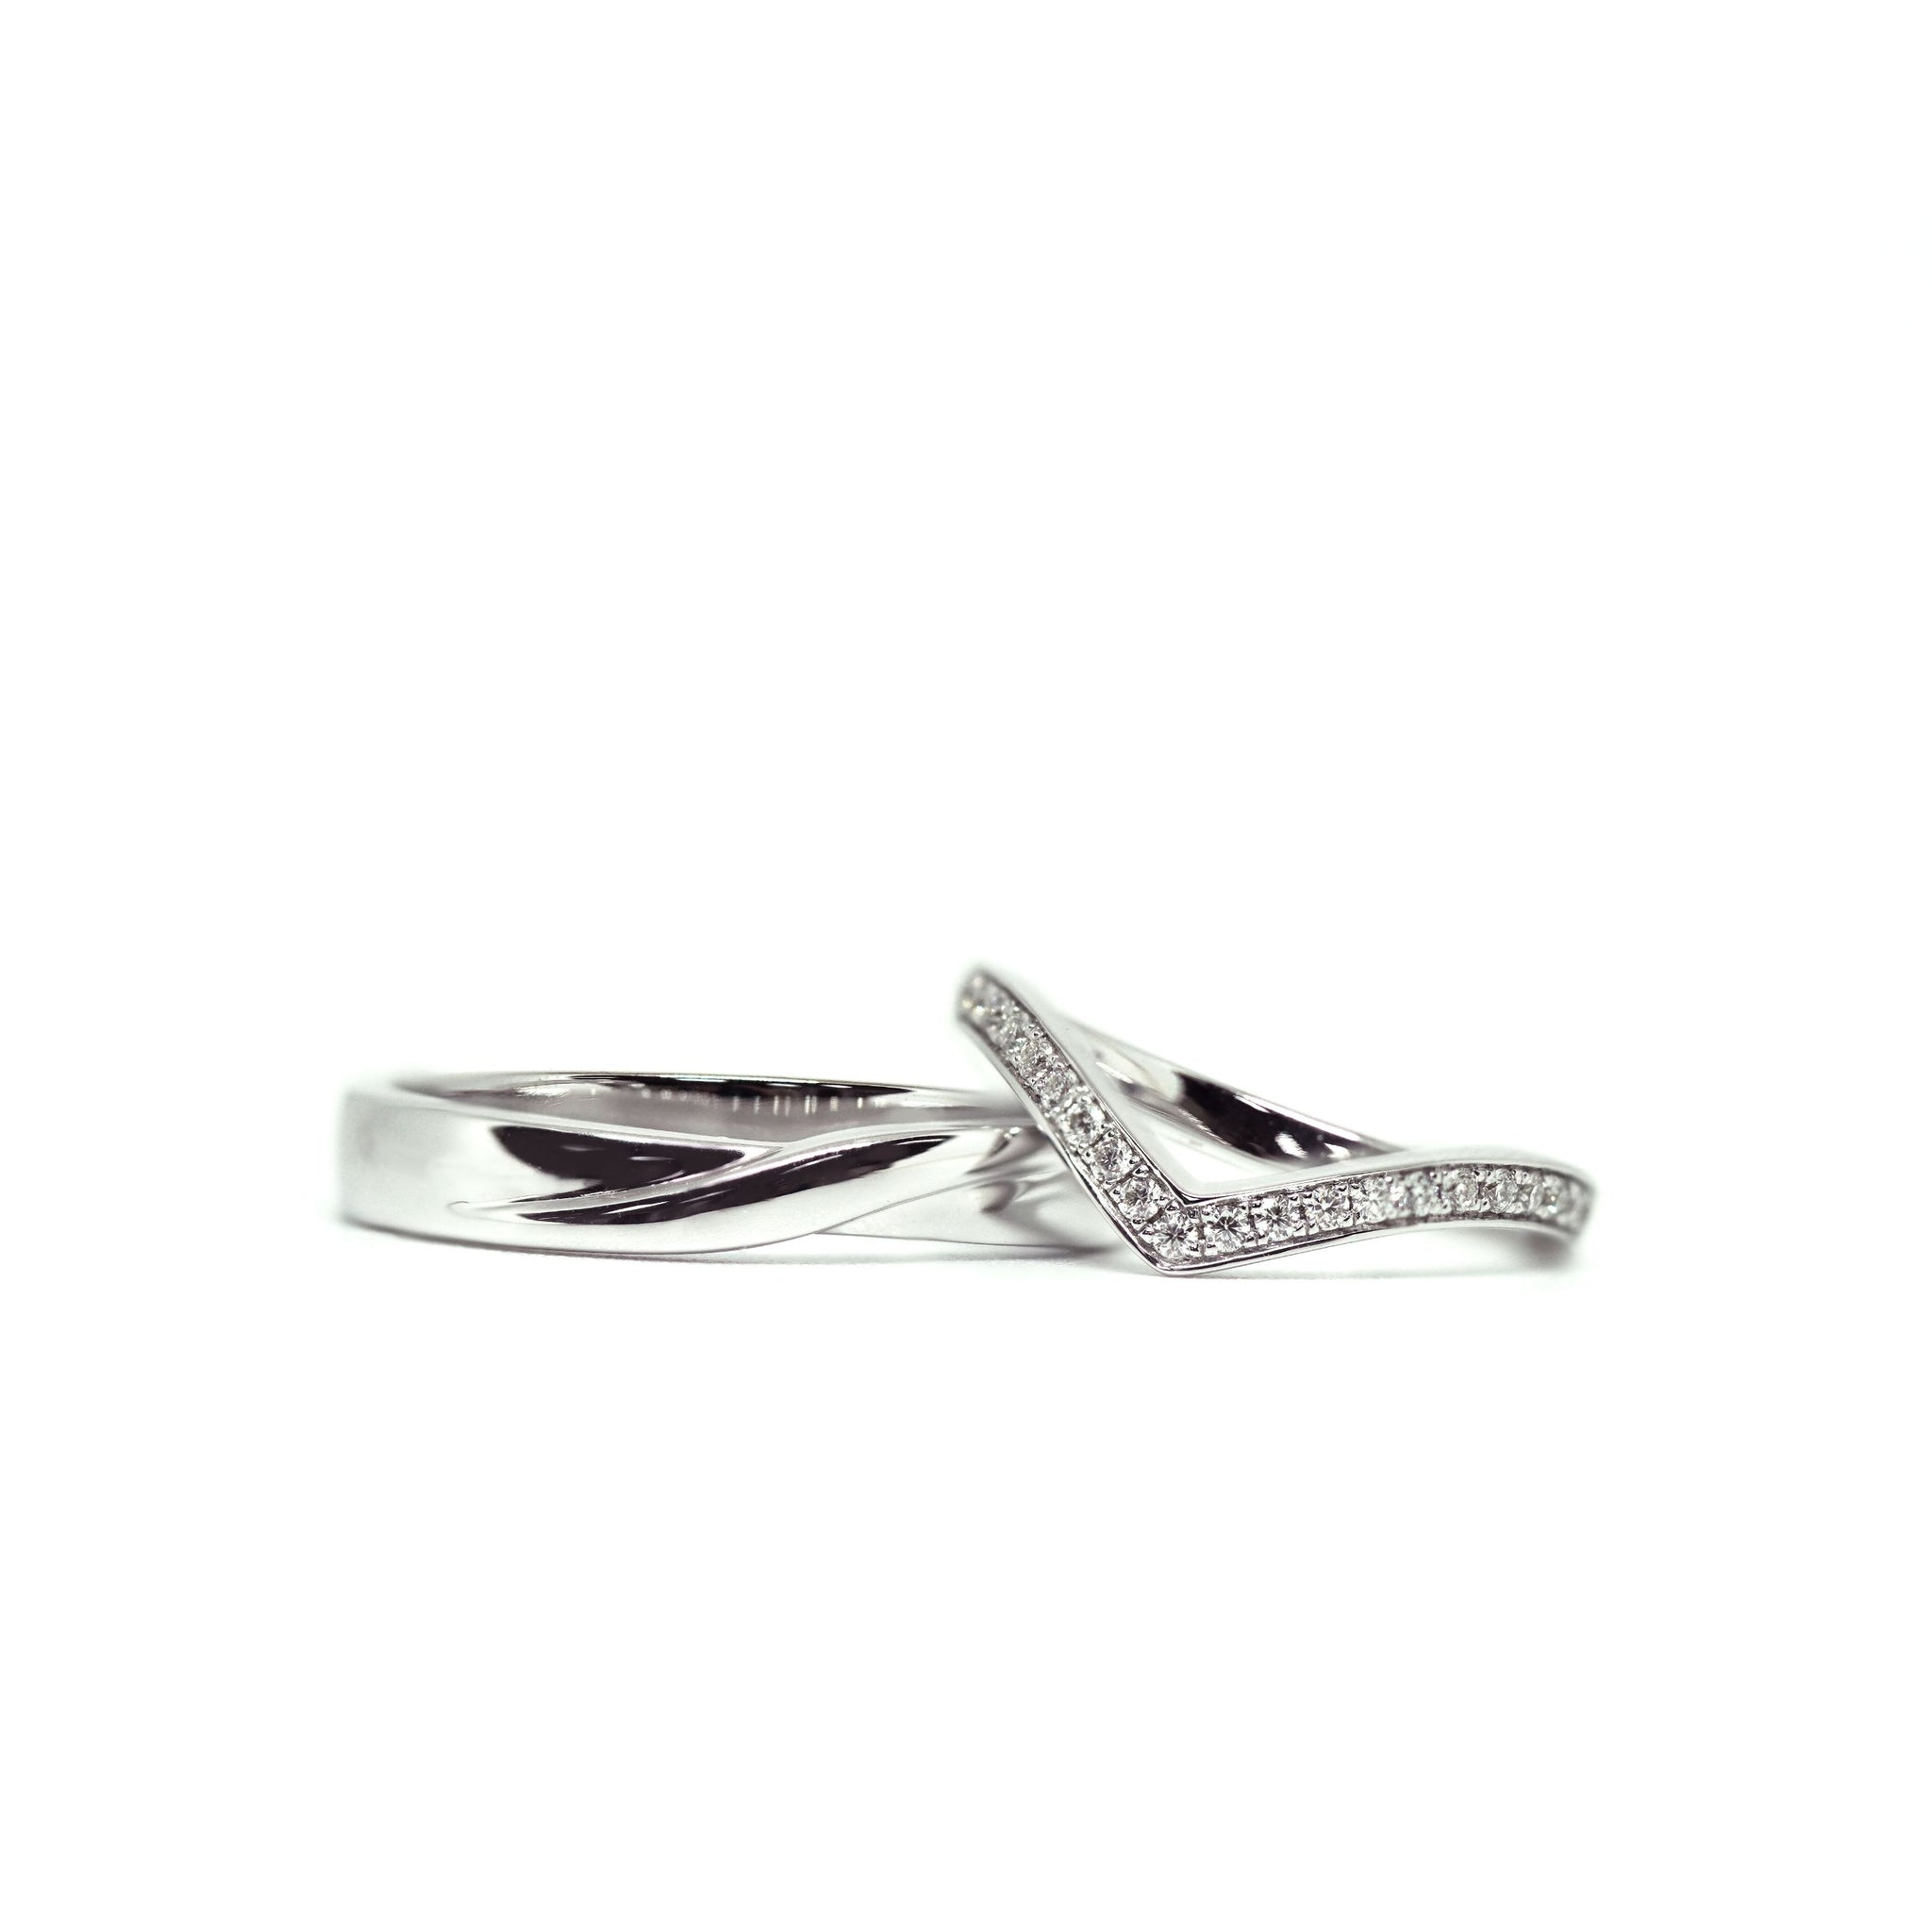 Kaylee 18K White Gold Wedding Bands with Infinity Design and V Shape Stacking Ring - LeCaine Gems